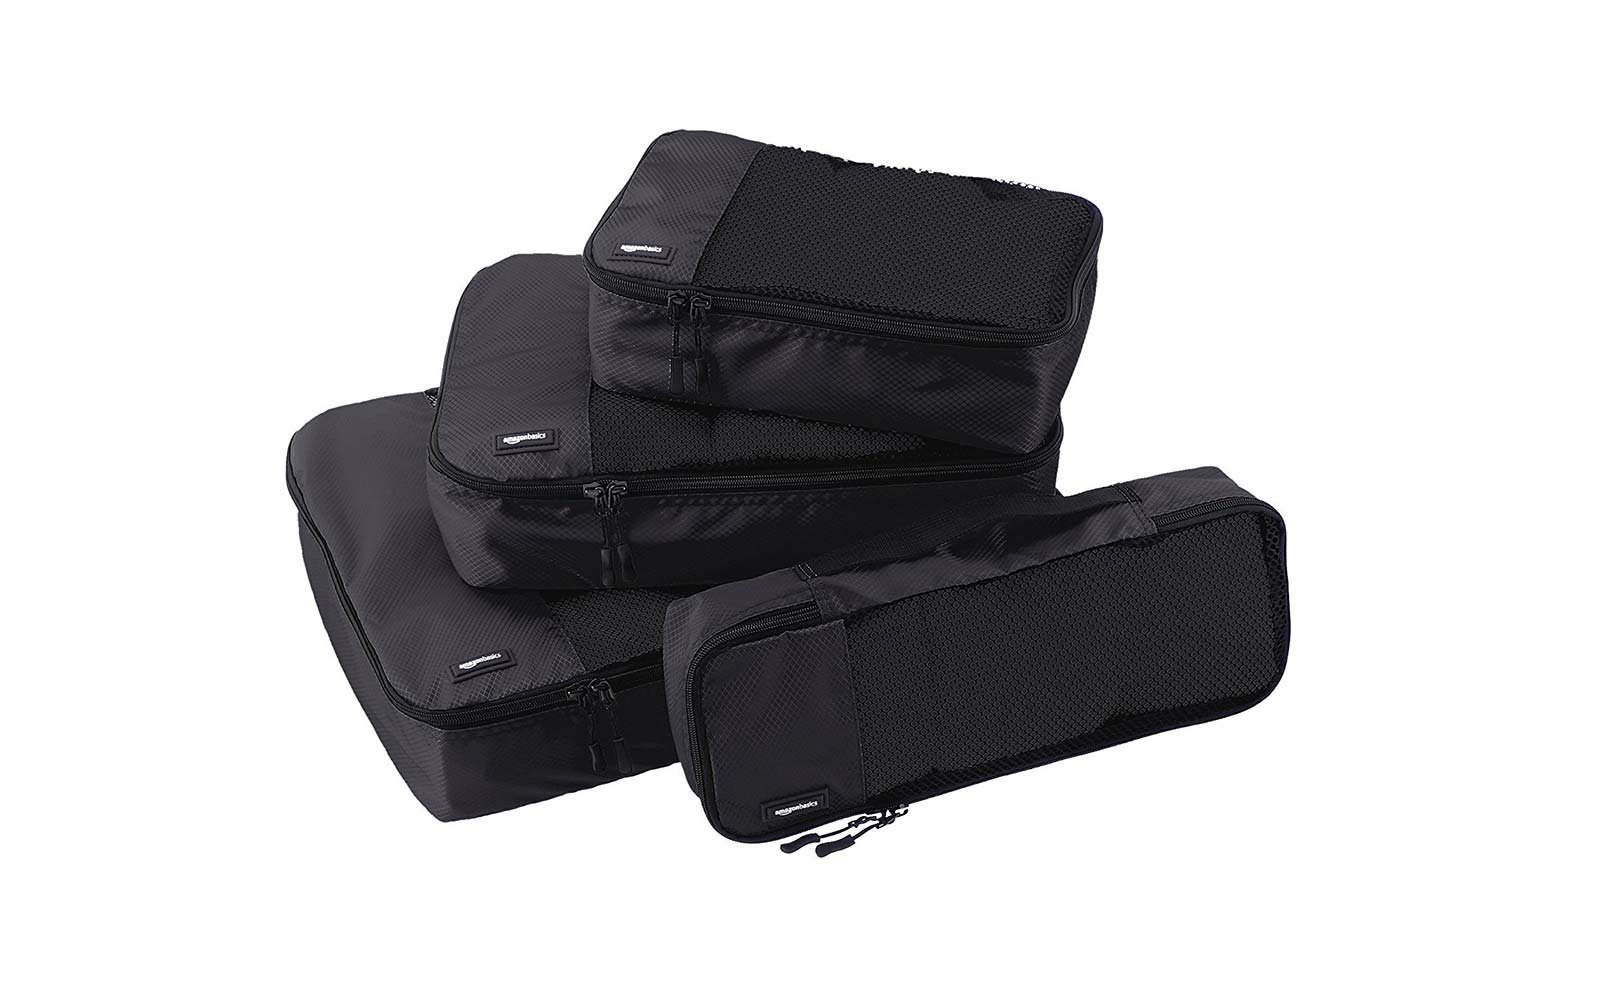 Amazon Packing Cubes Gift Guide Under $25k